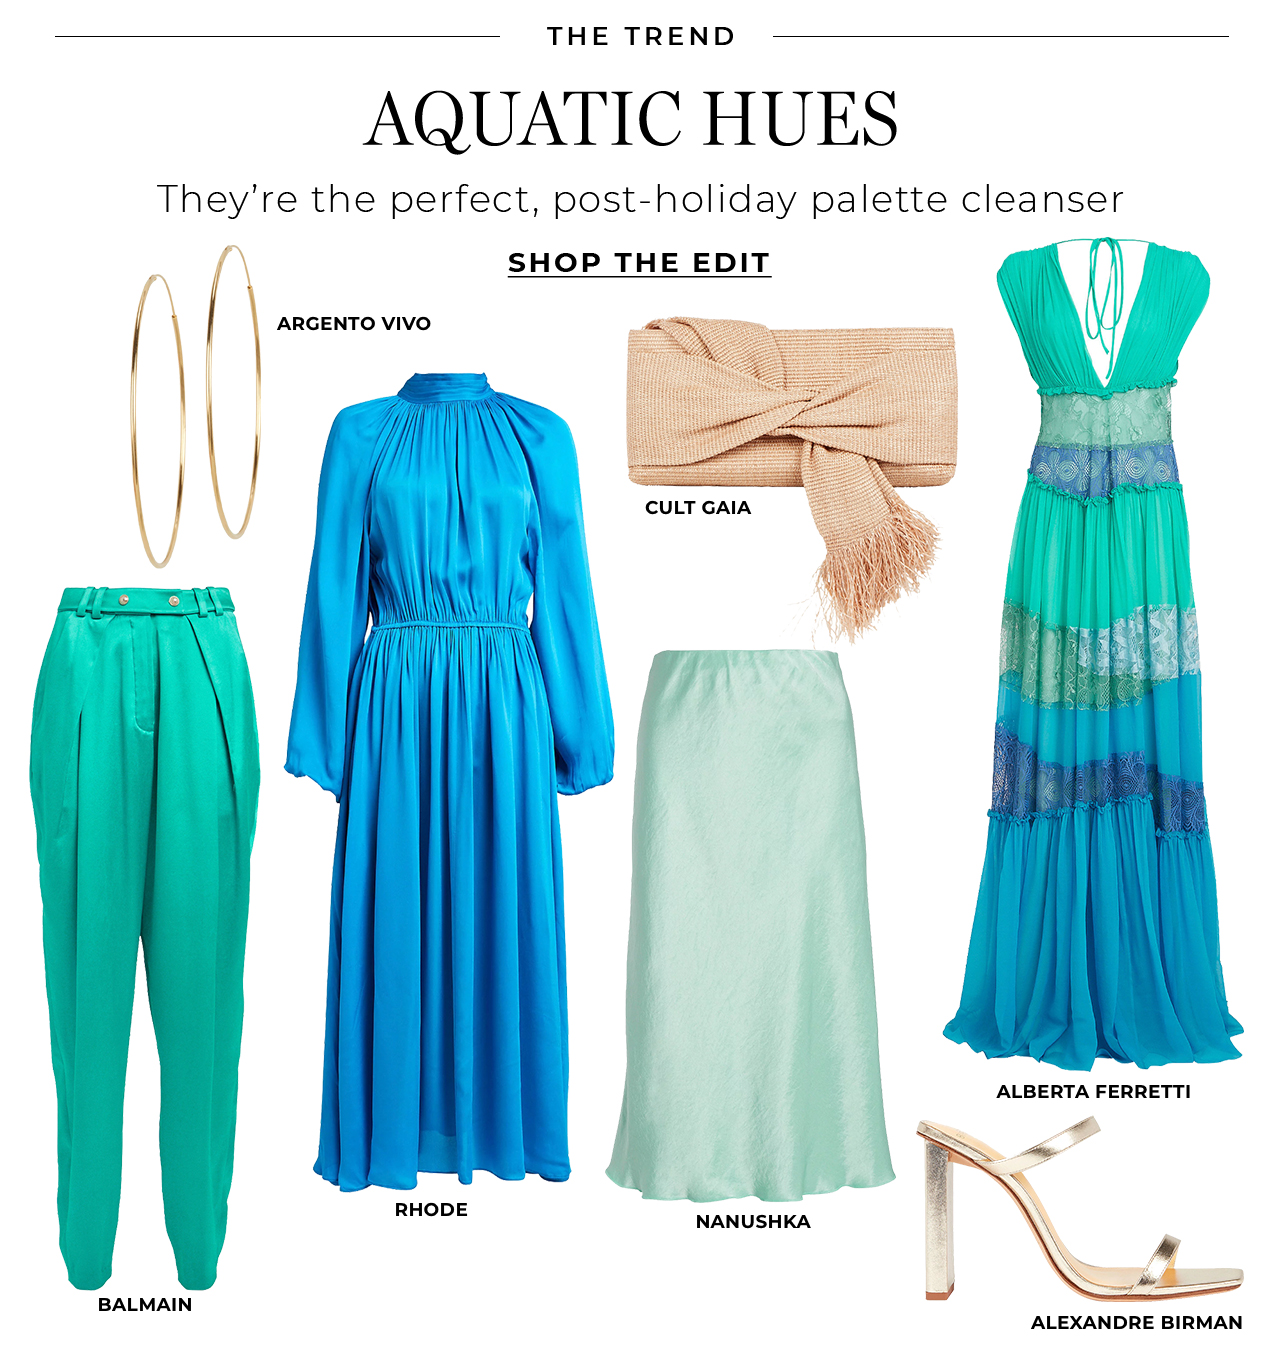 Aquatic hues are the perfect post-holiday palette cleanser